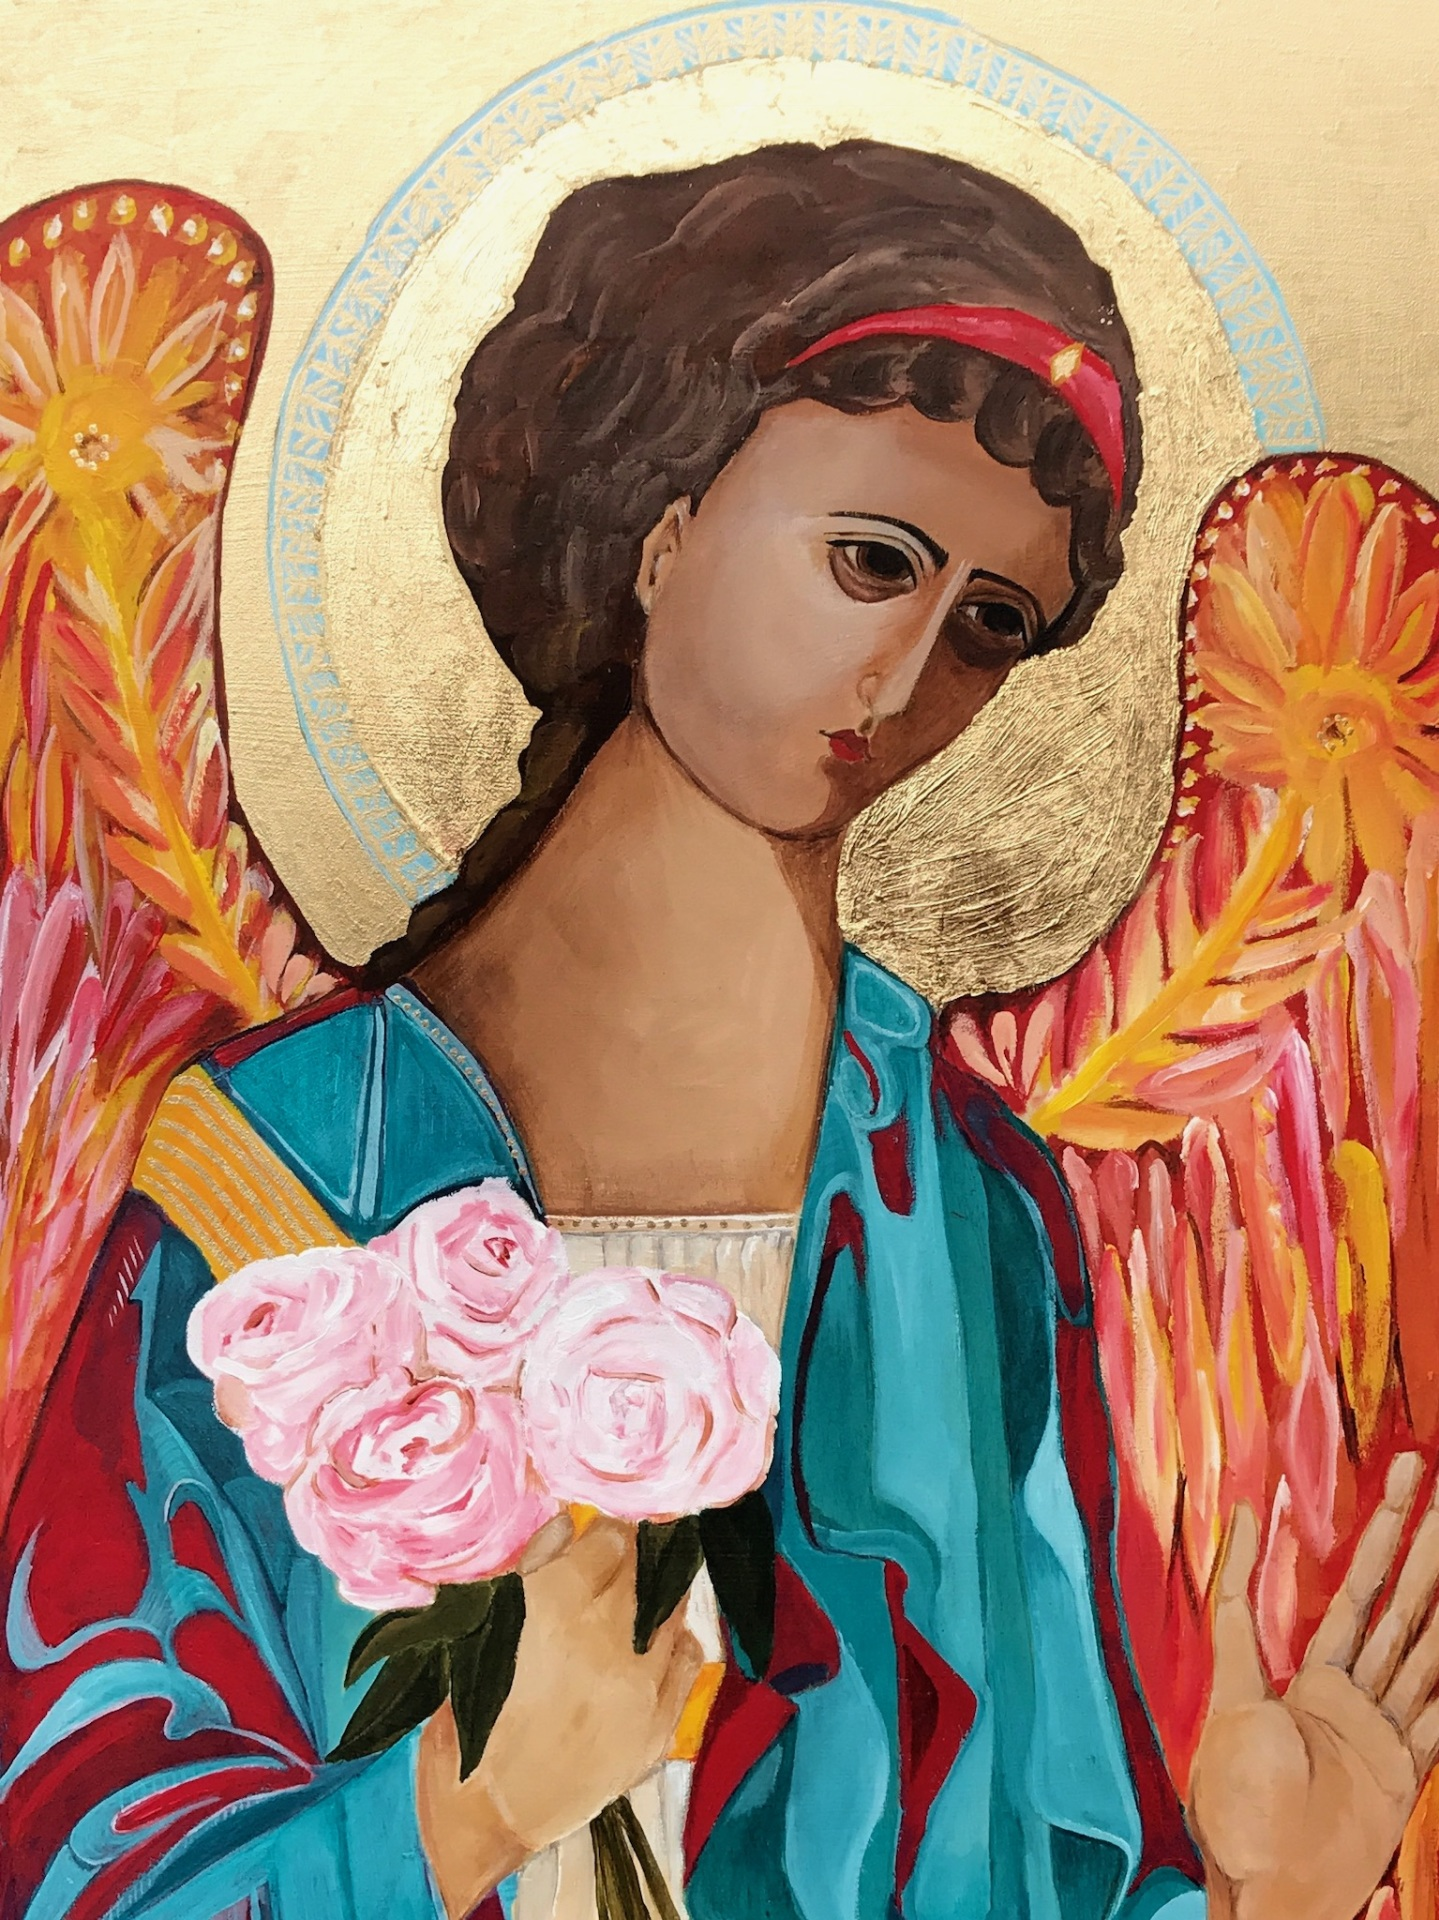 angels, Catholic art, religious art, holy images, iconography